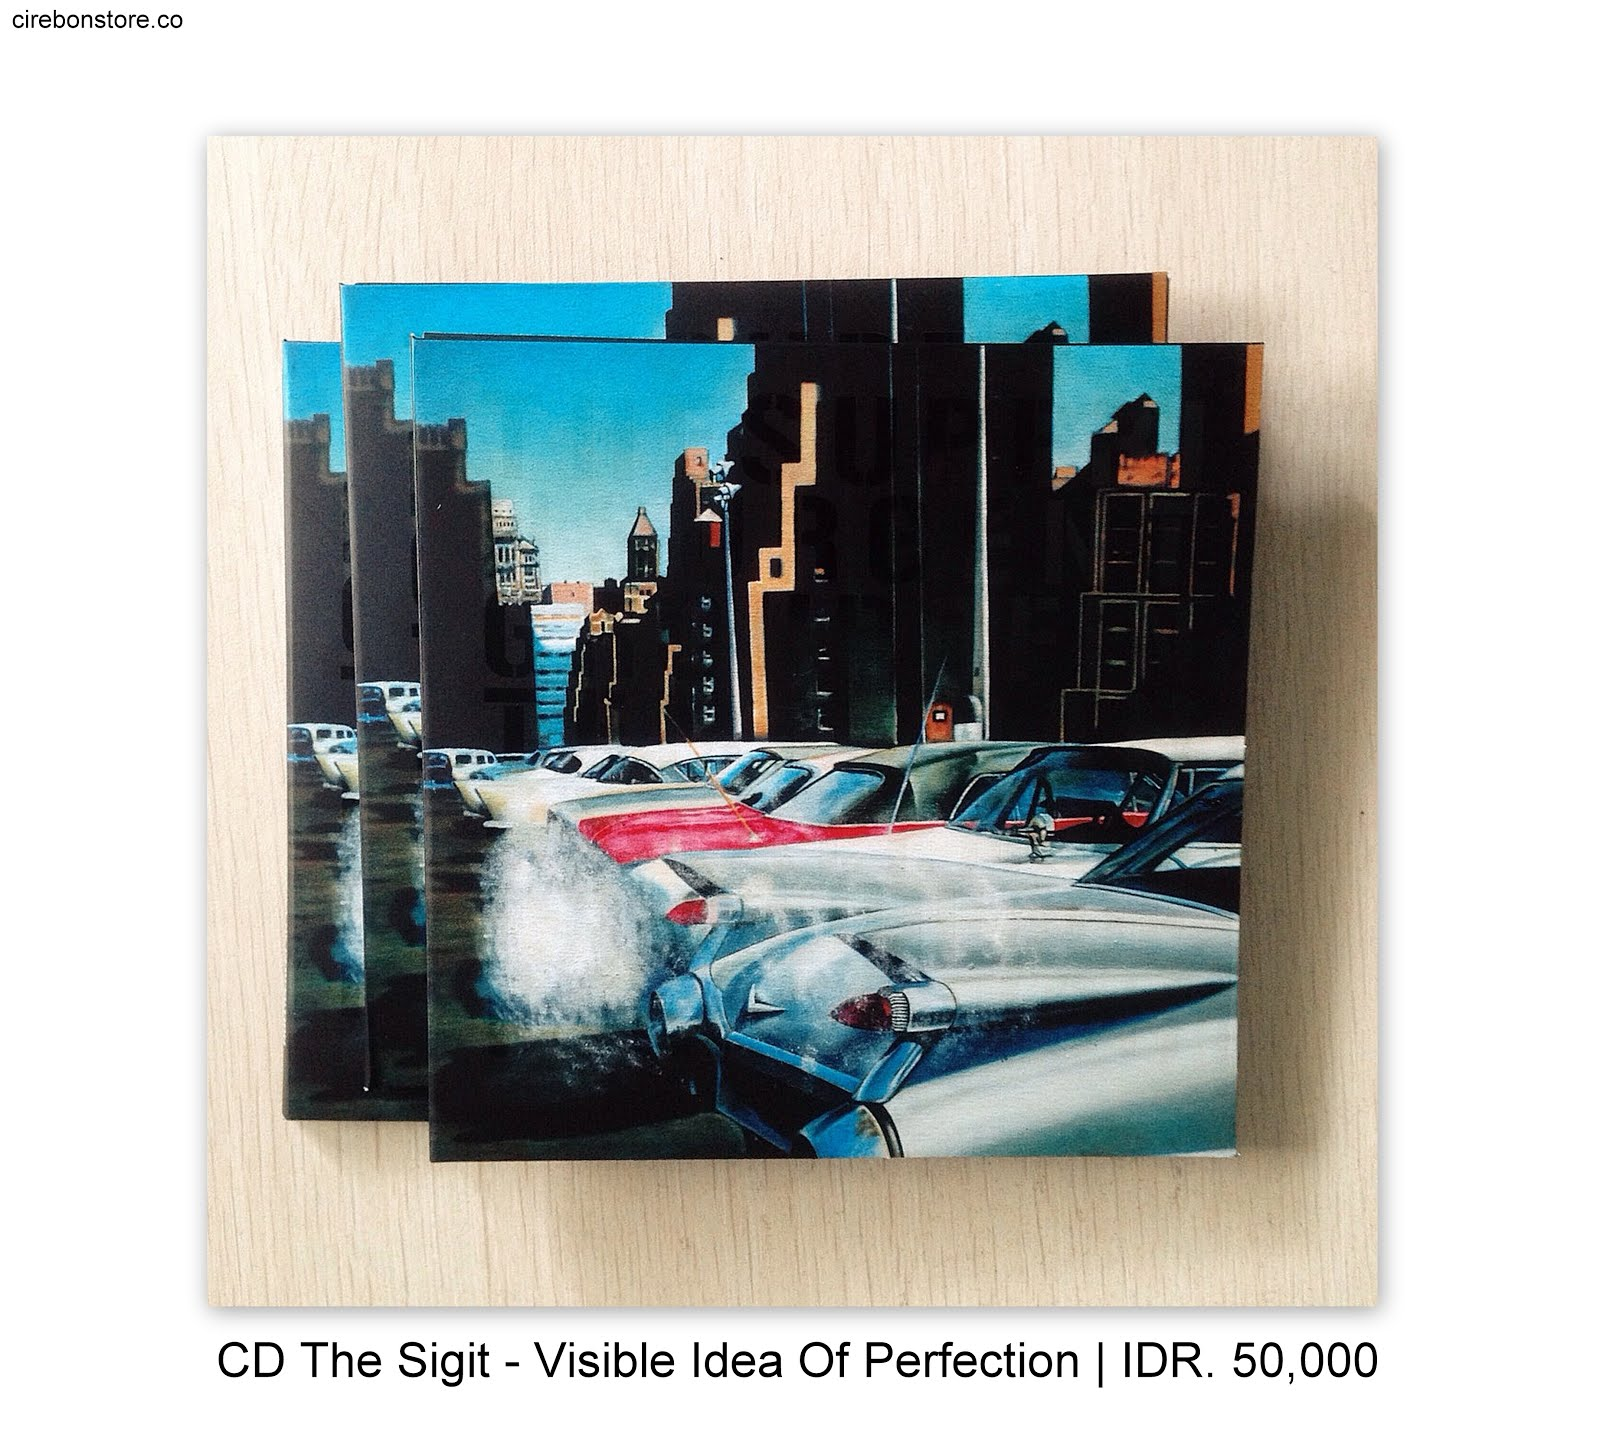 cd the sigit - visible idea of perfection,the sigit album visible idea of perfection download,the sigit visible idea of perfection rar,the sigit hertz dyslexia,visible idea of perfection songs,the sigit visible idea of perfection songs,download the sigit full album rar,the sigit detourn,download the sigit black amplifier